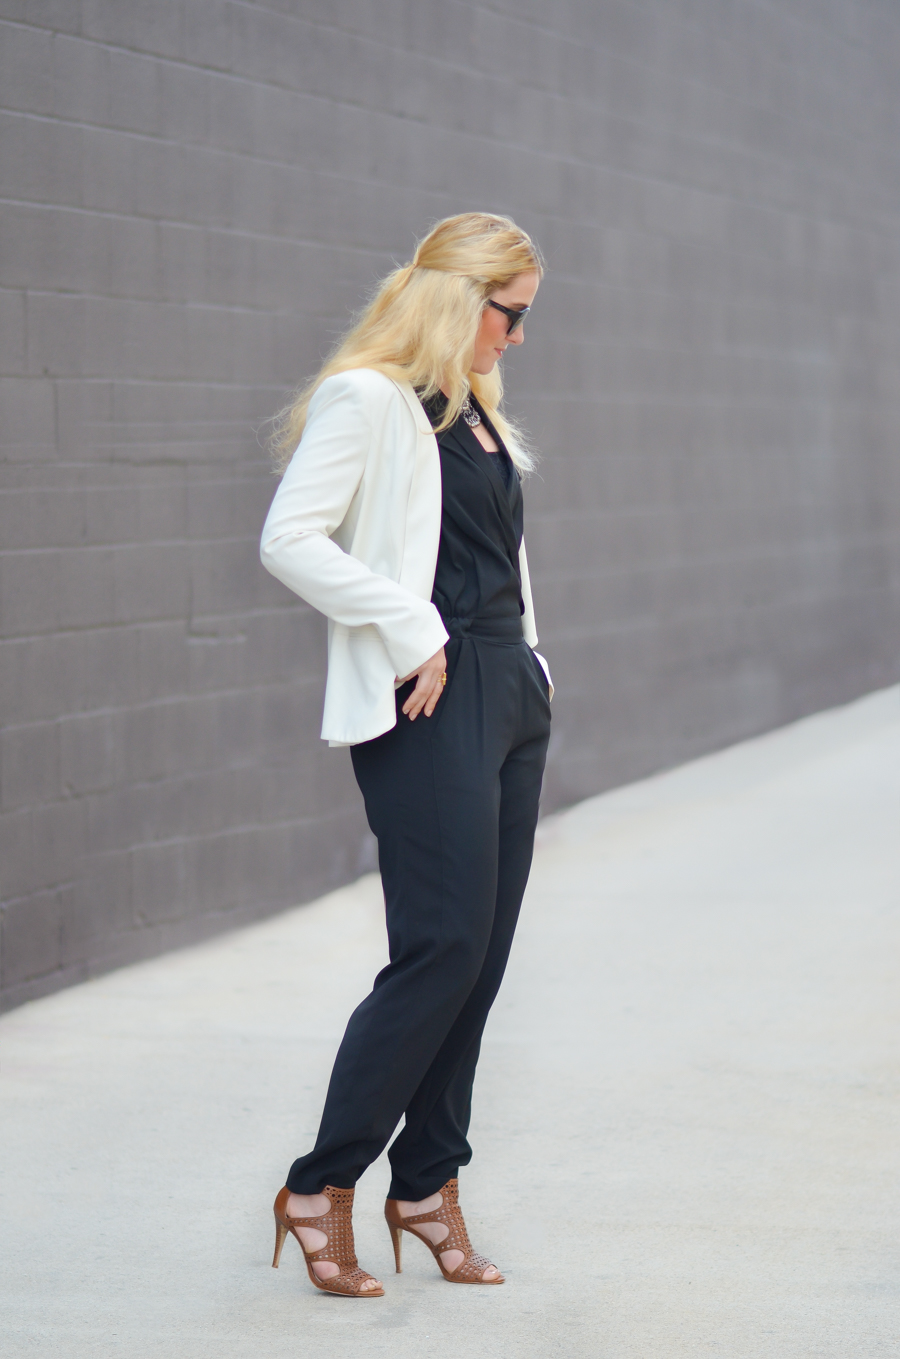 How to Style Black Jumpsuit + White Blazer What to Wear Over a Sleeveless Jumpsuit